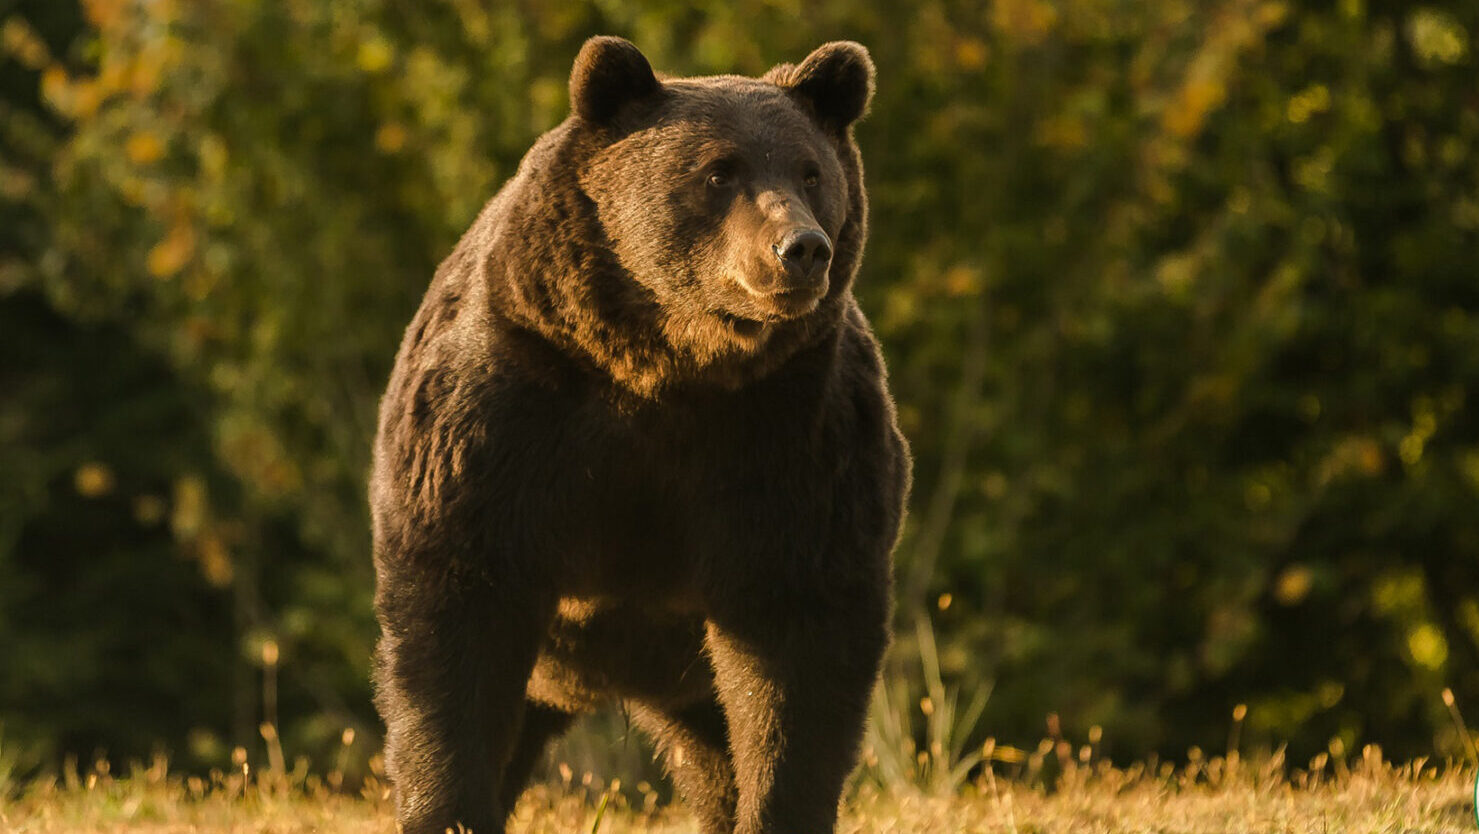 His Royal Unkindness: Fury Over Prince Who Paid $8,500 To Shoot Europe's Biggest Bear